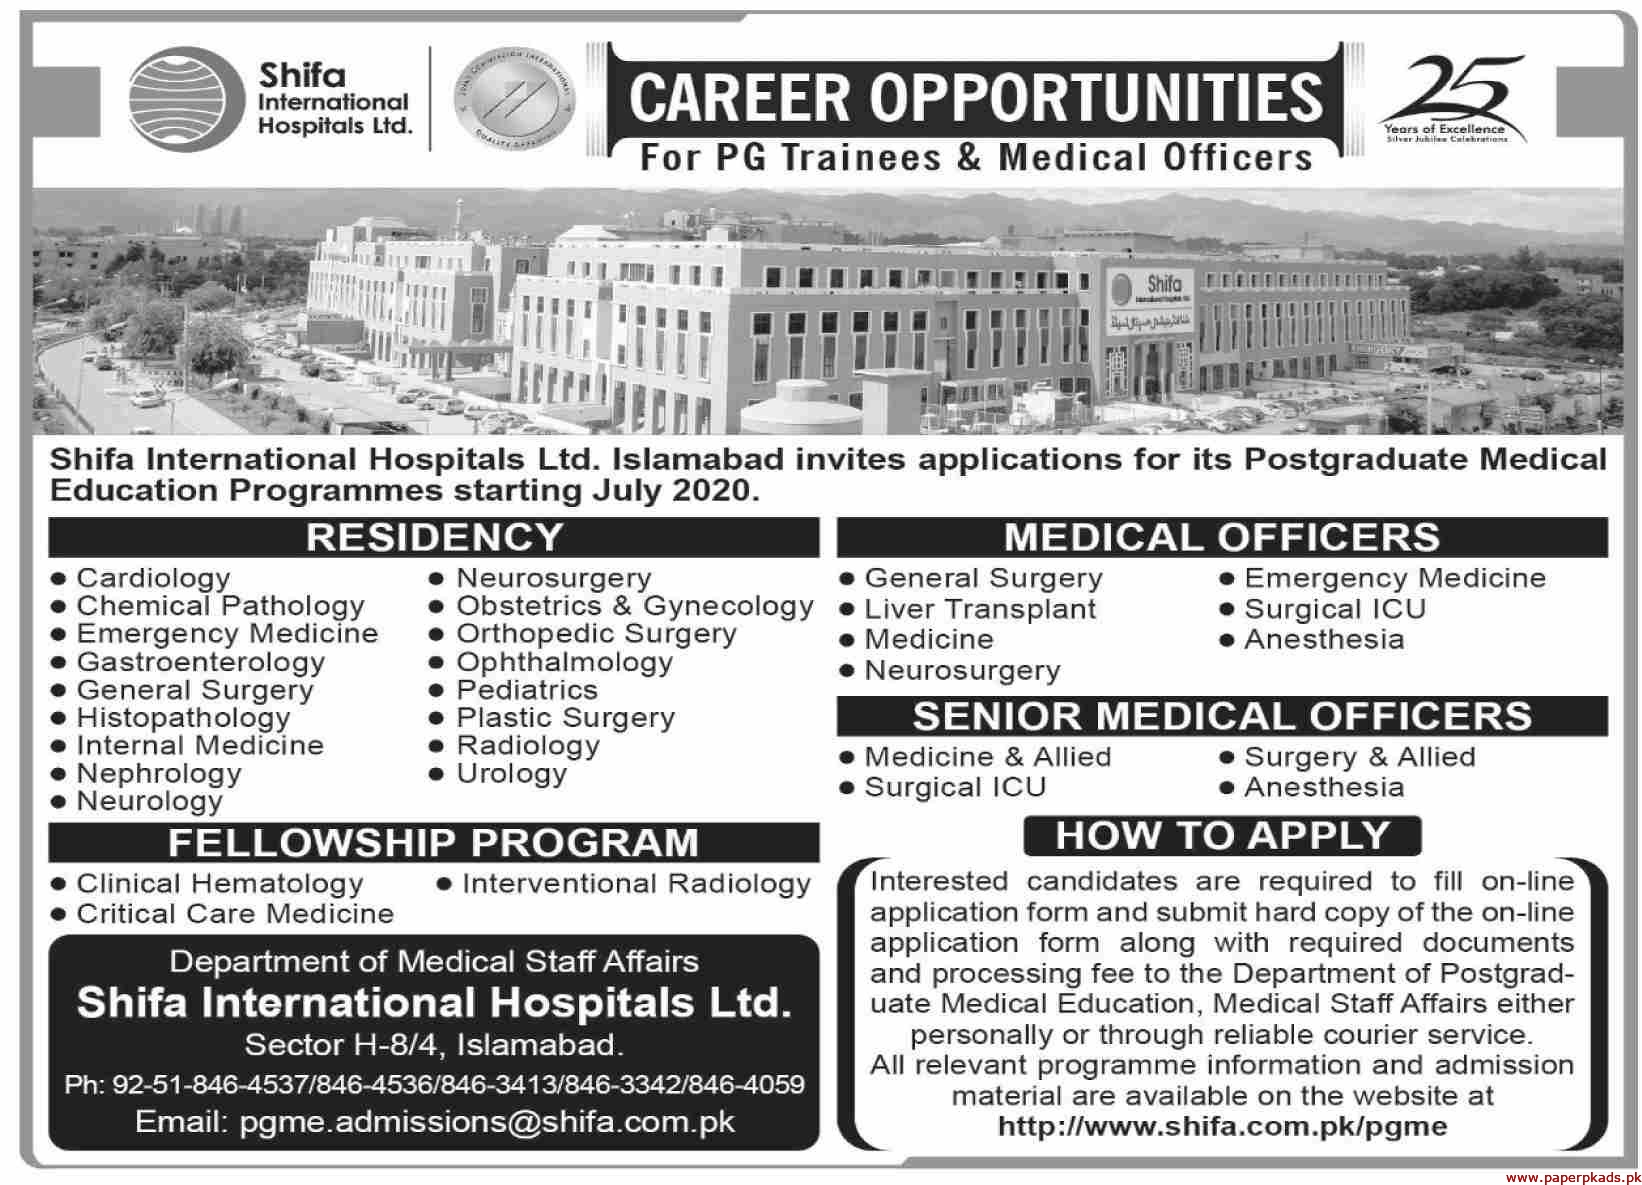 Shifa International Hospitals Ltd Jobs 2020 Latest